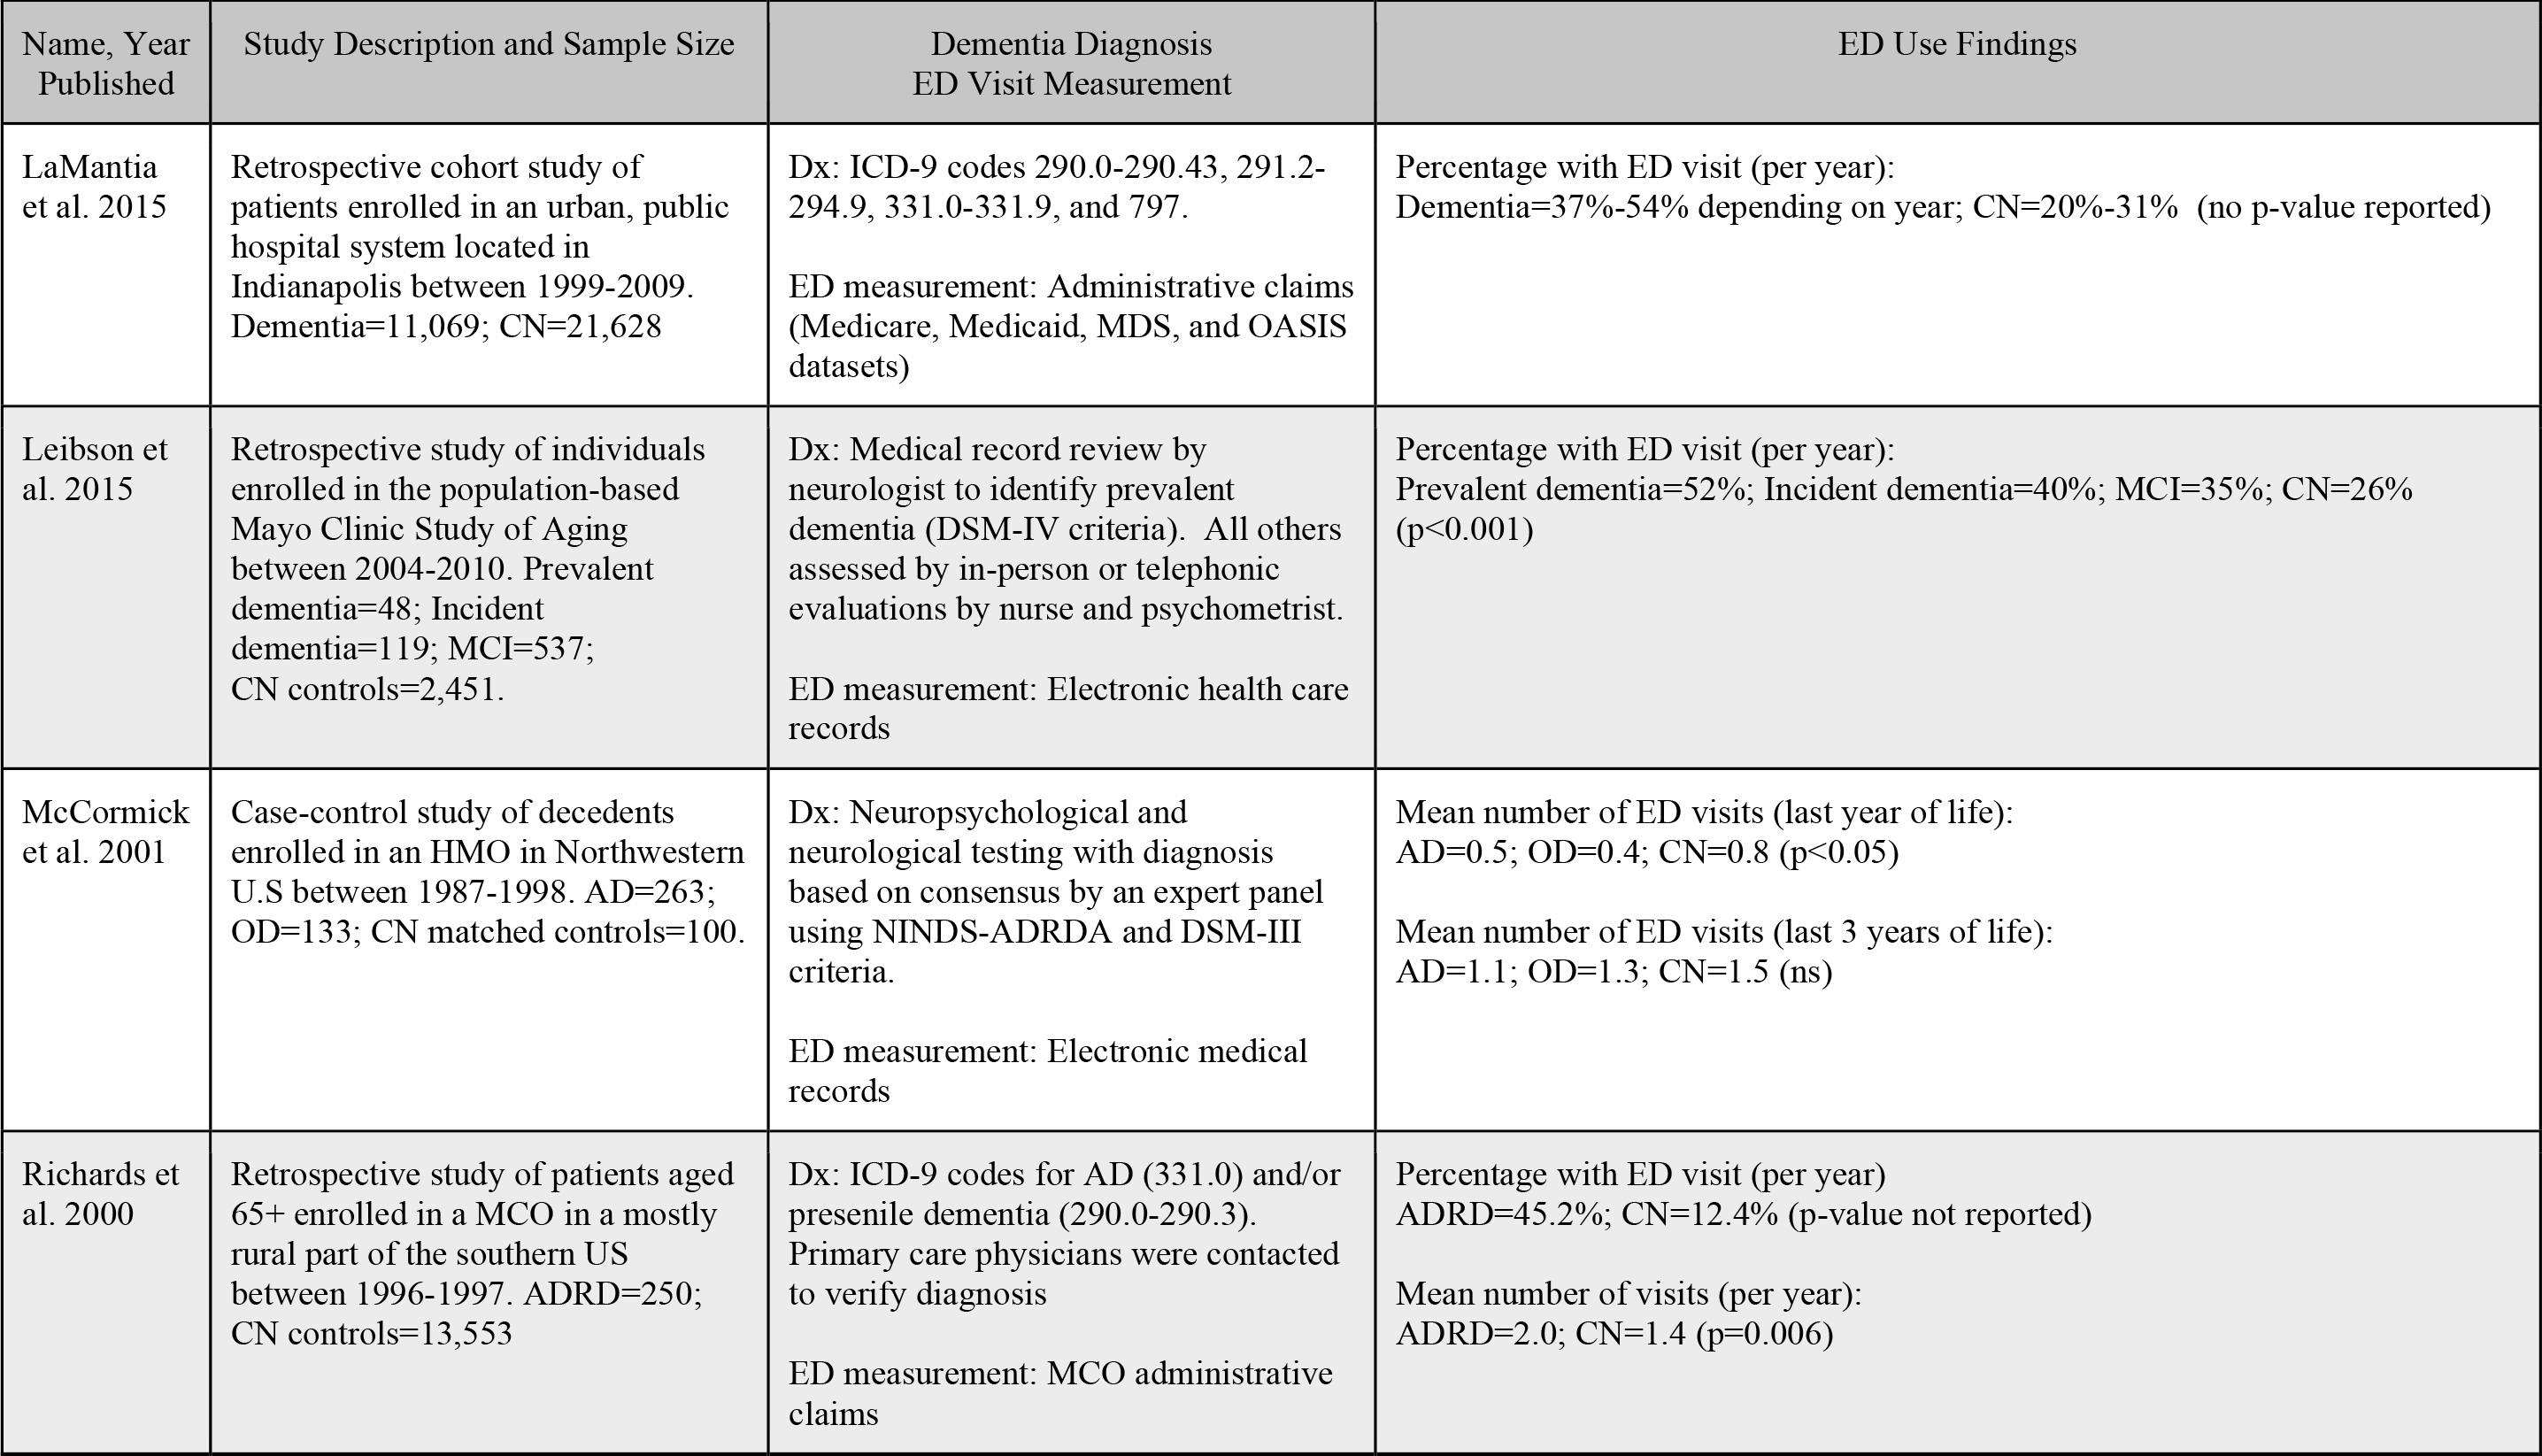 Characteristics and Findings of Studies Comparing ED Use by Persons With and Without Dementia